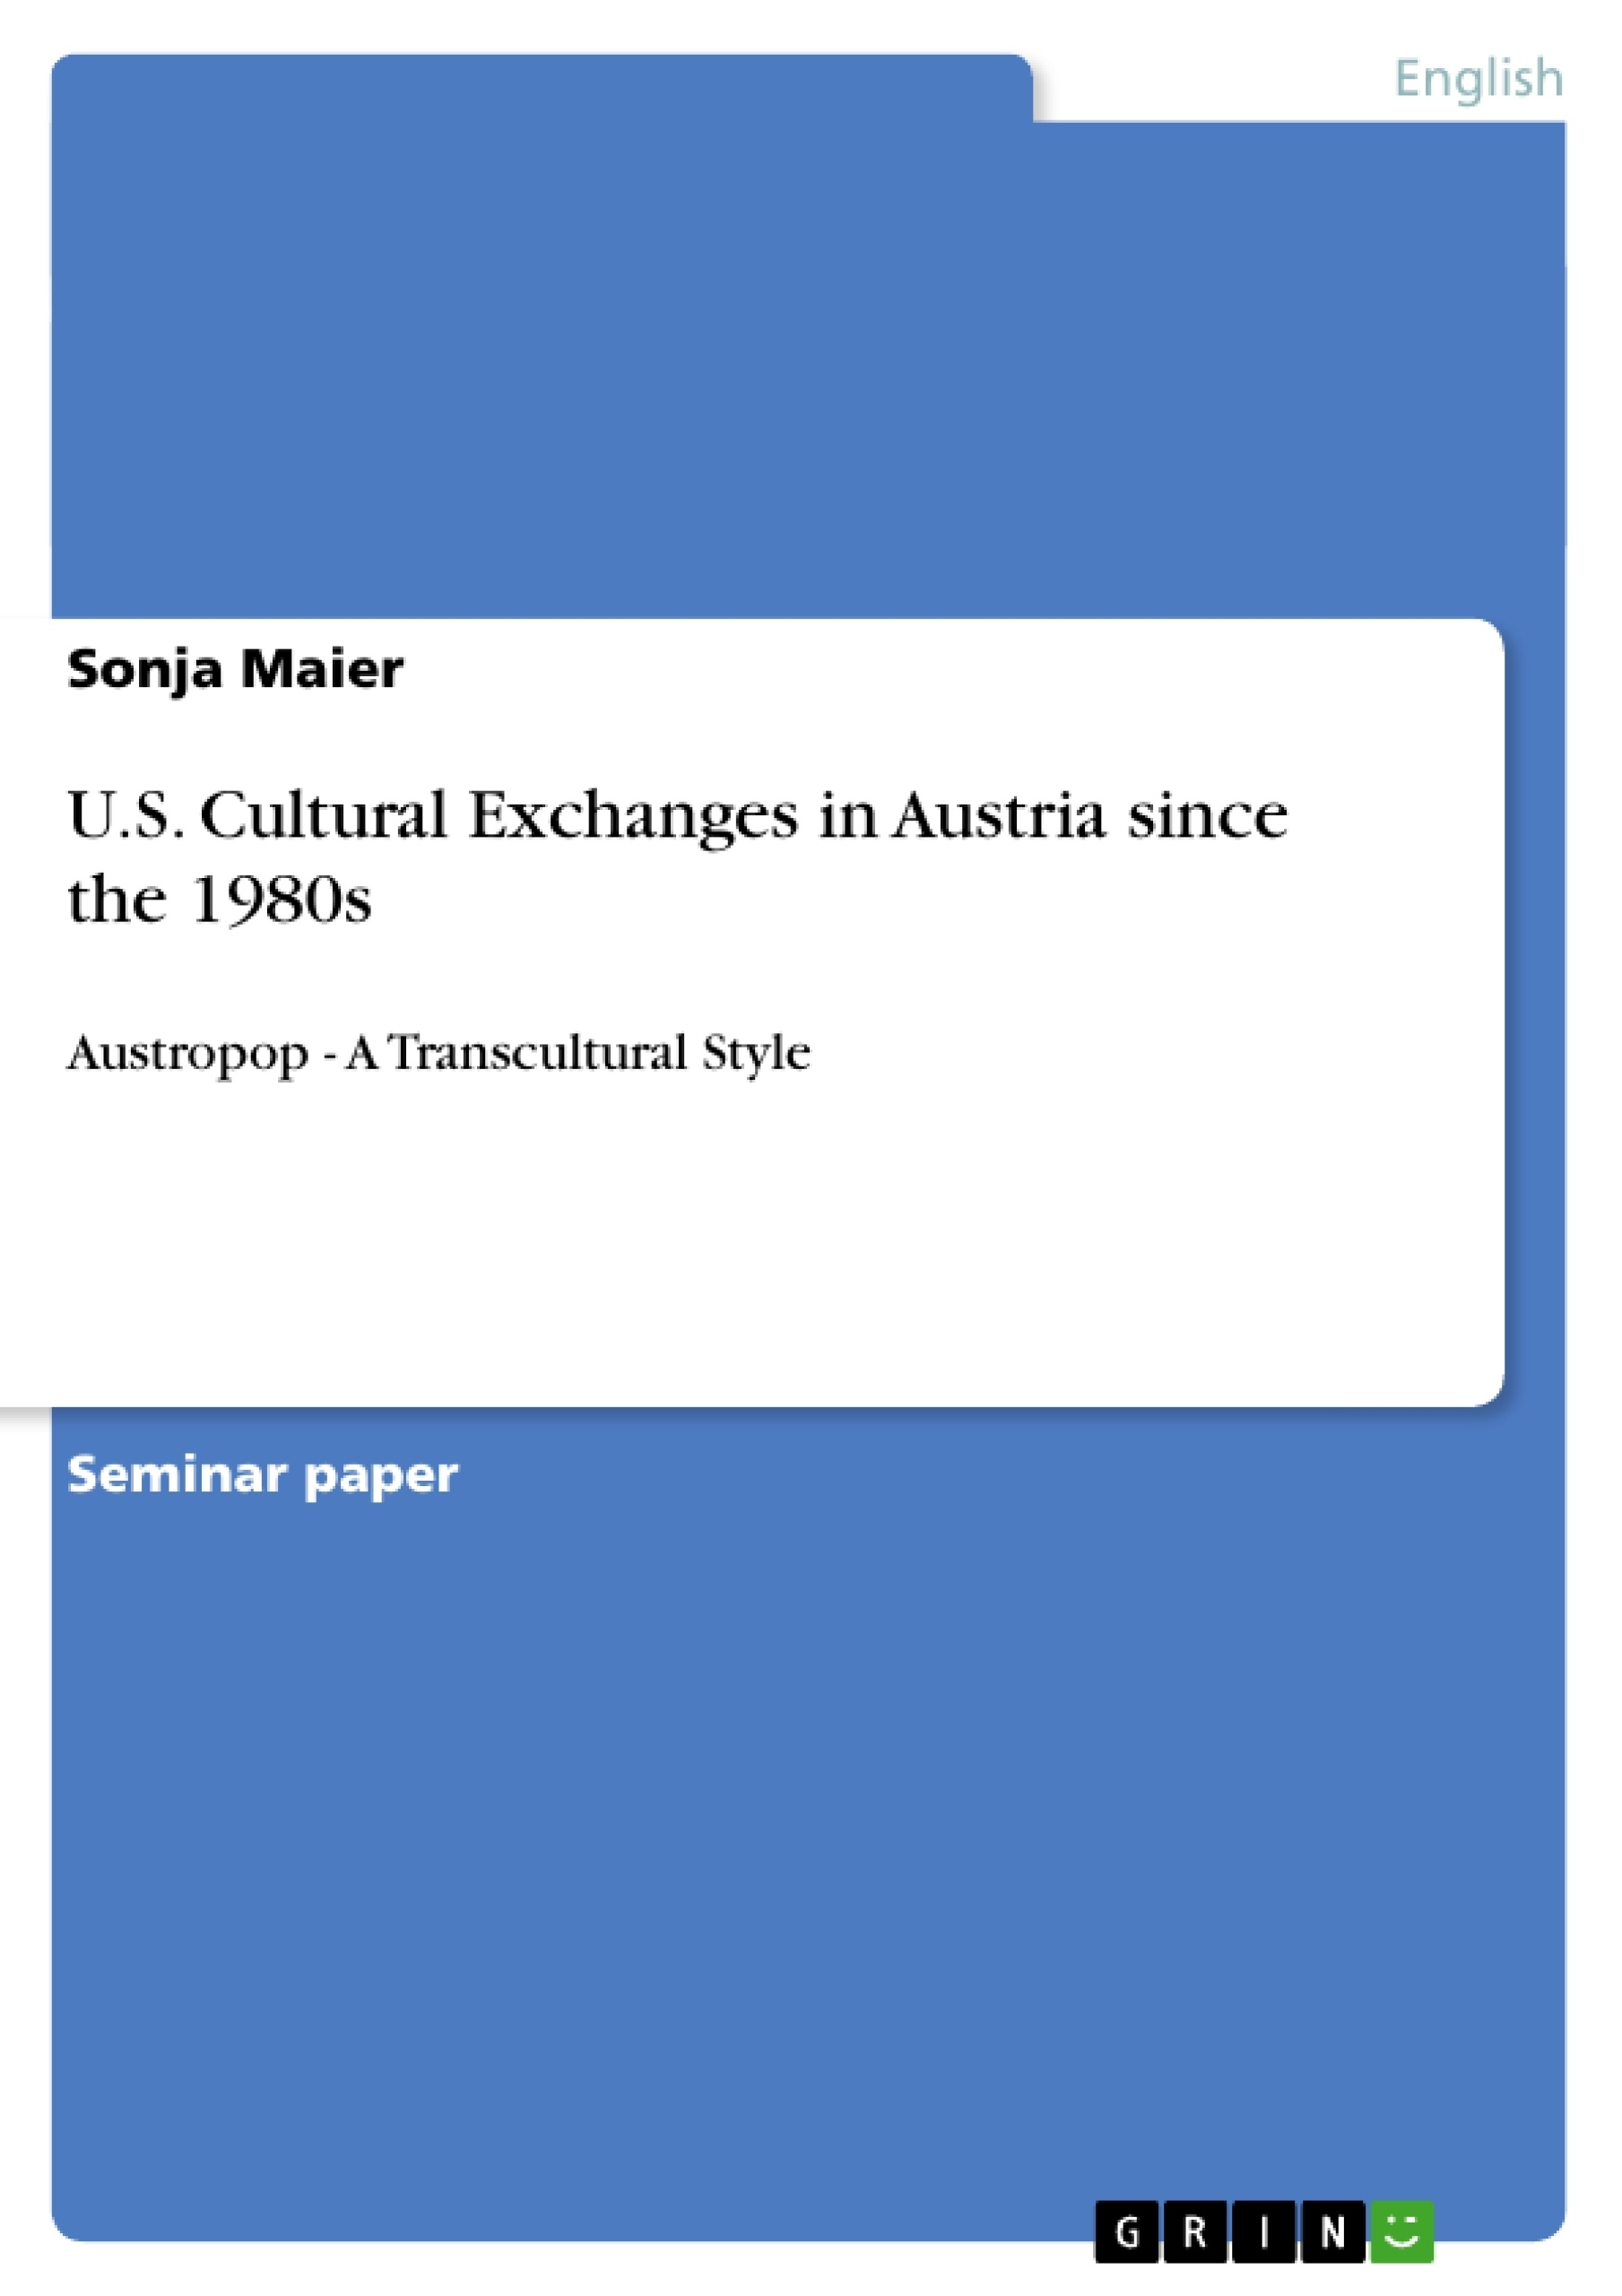 Title: U.S. Cultural Exchanges in Austria since the 1980s